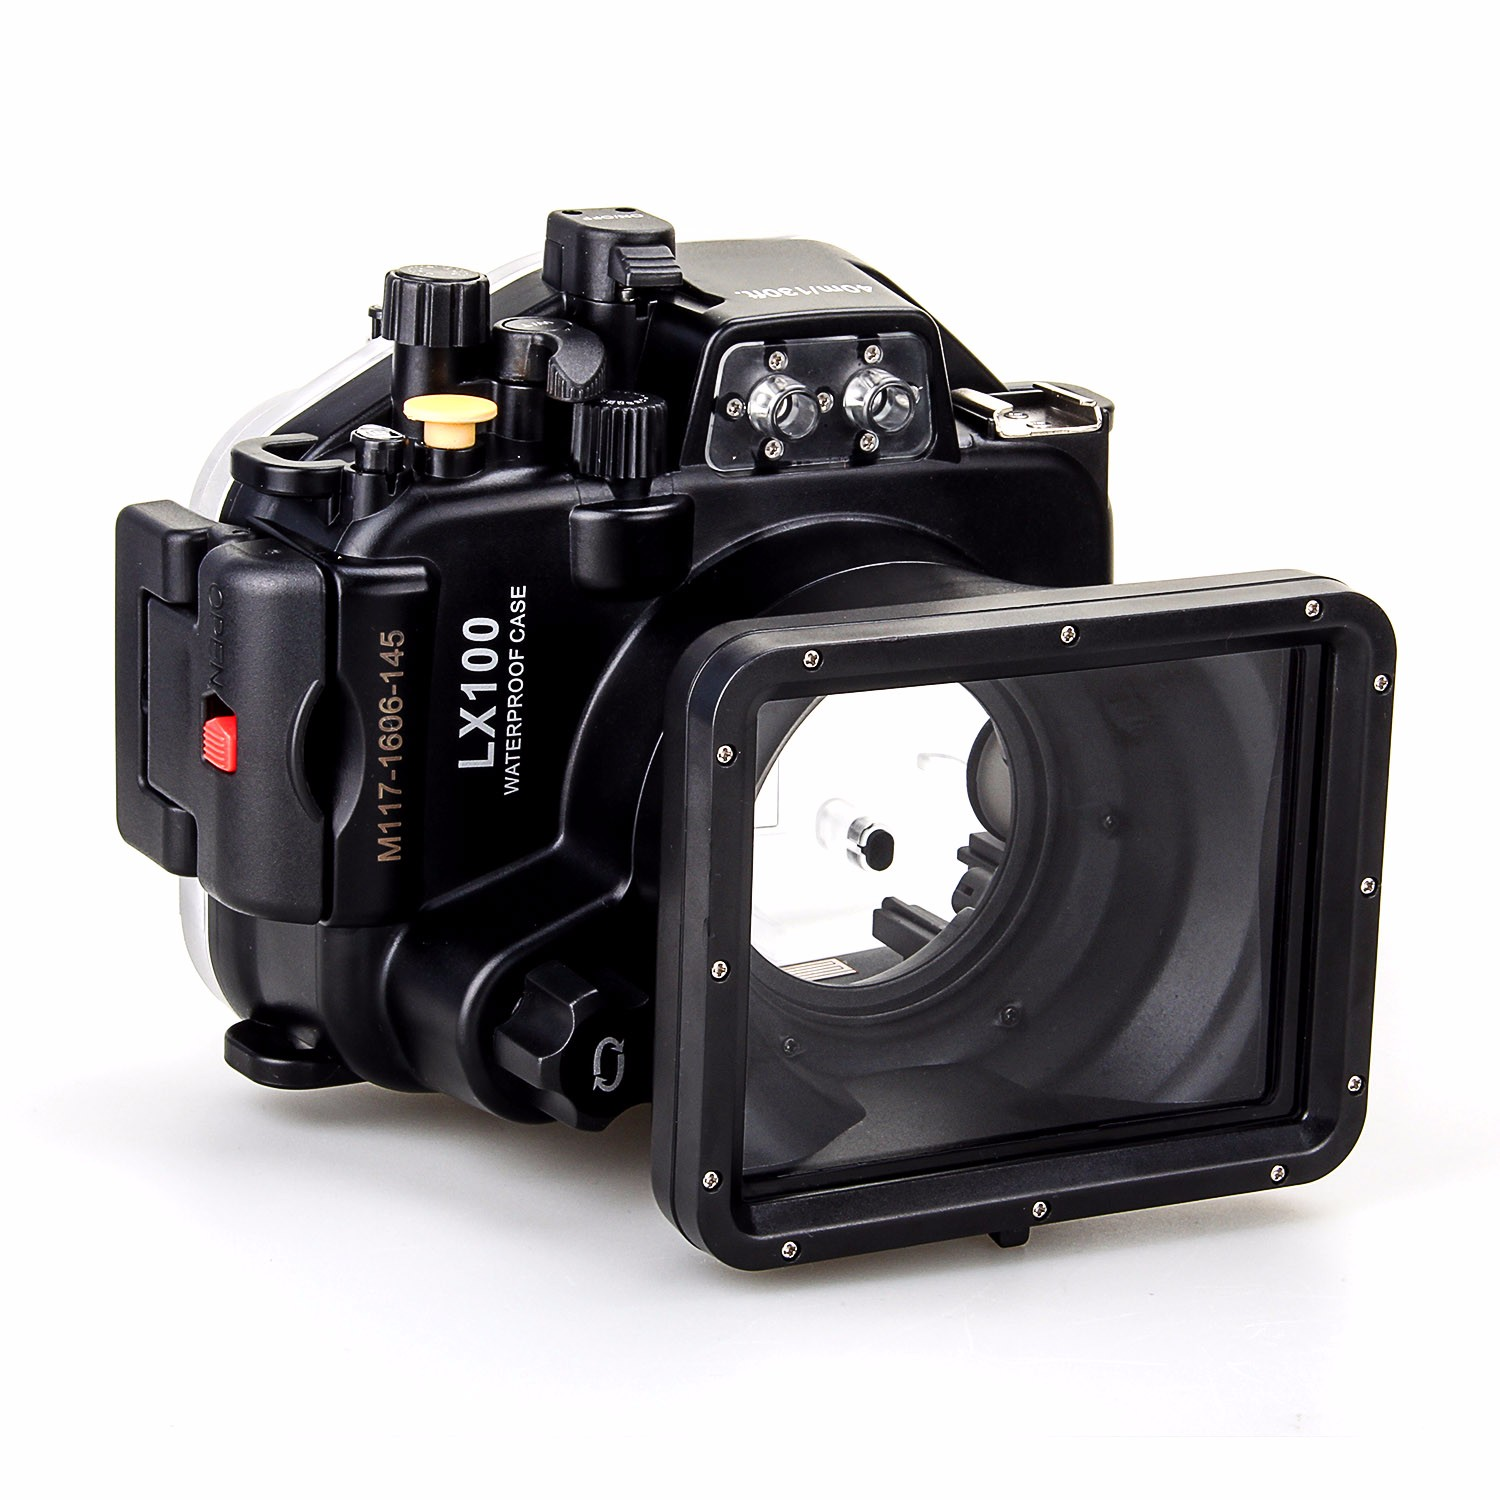 Meikon 40M/130ft Underwater Waterproof Housing Case For <font><b>Panasonic</b></font> <font><b>Lumix</b></font> <font><b>LX100</b></font> with 27-75mm Lens image